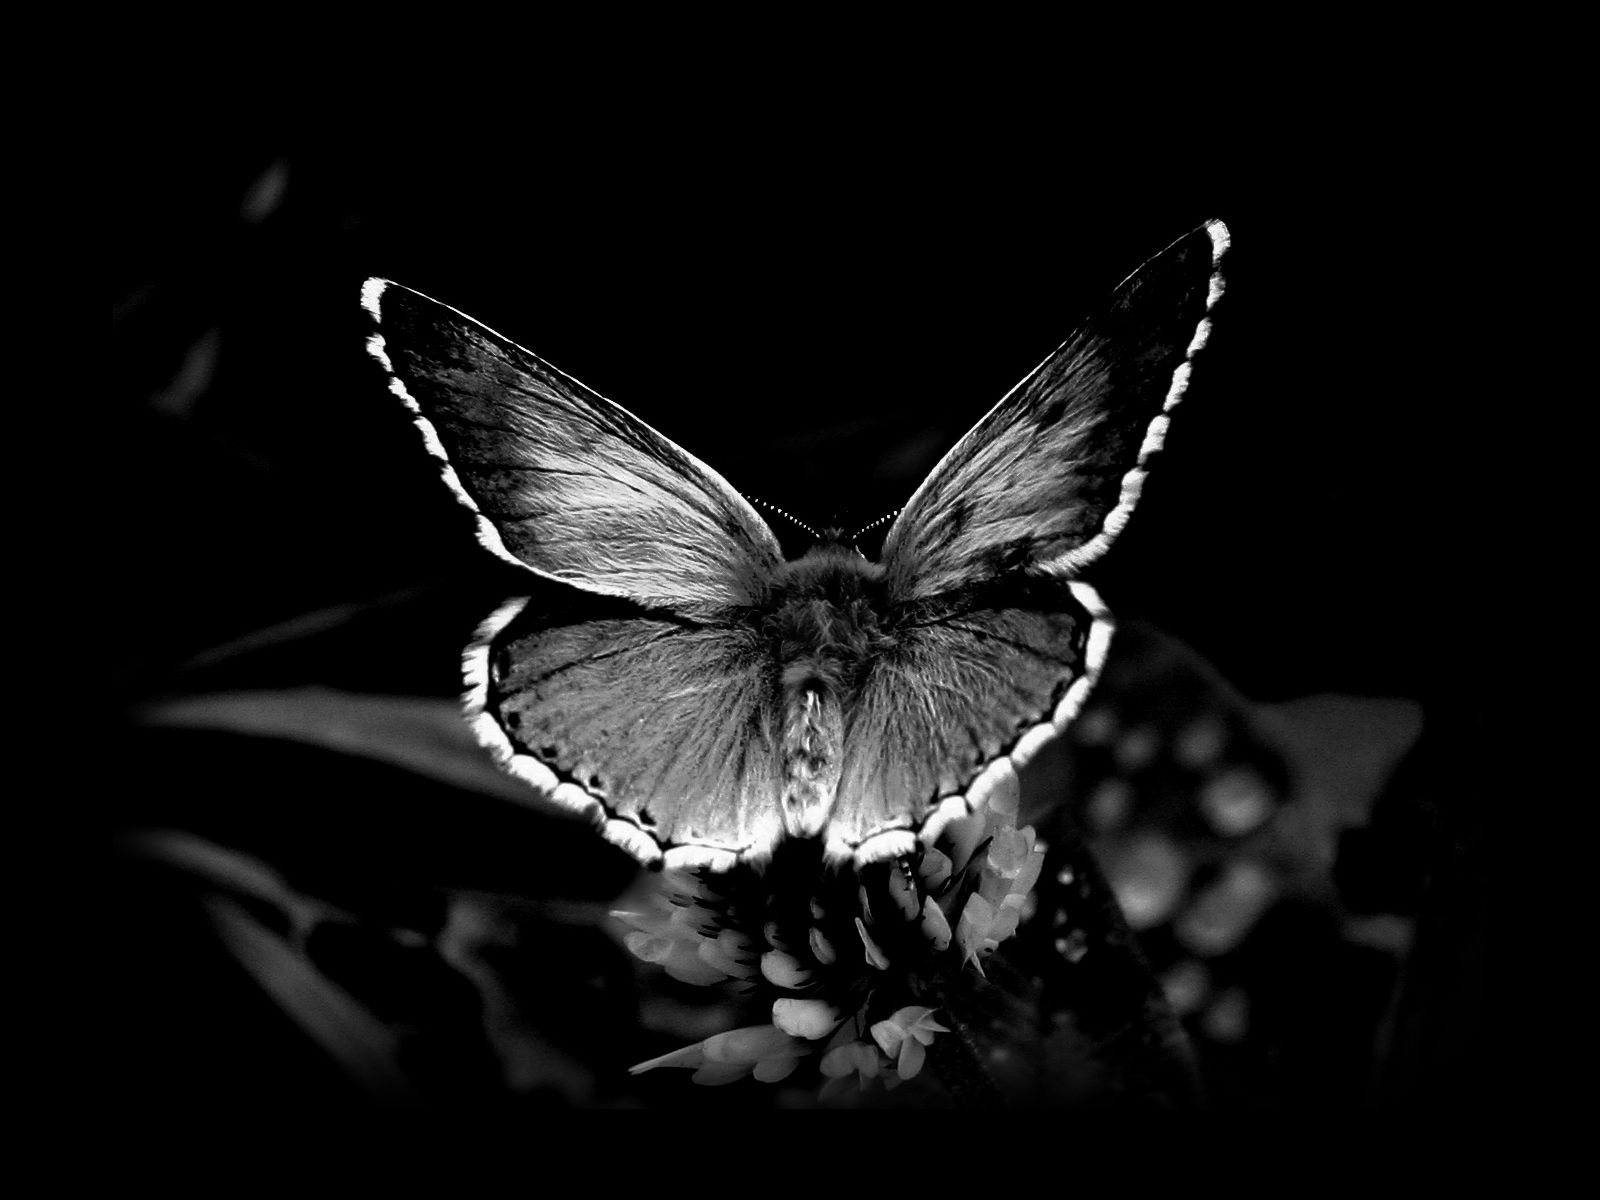 Awesome black and white butterfly wallpaper hd